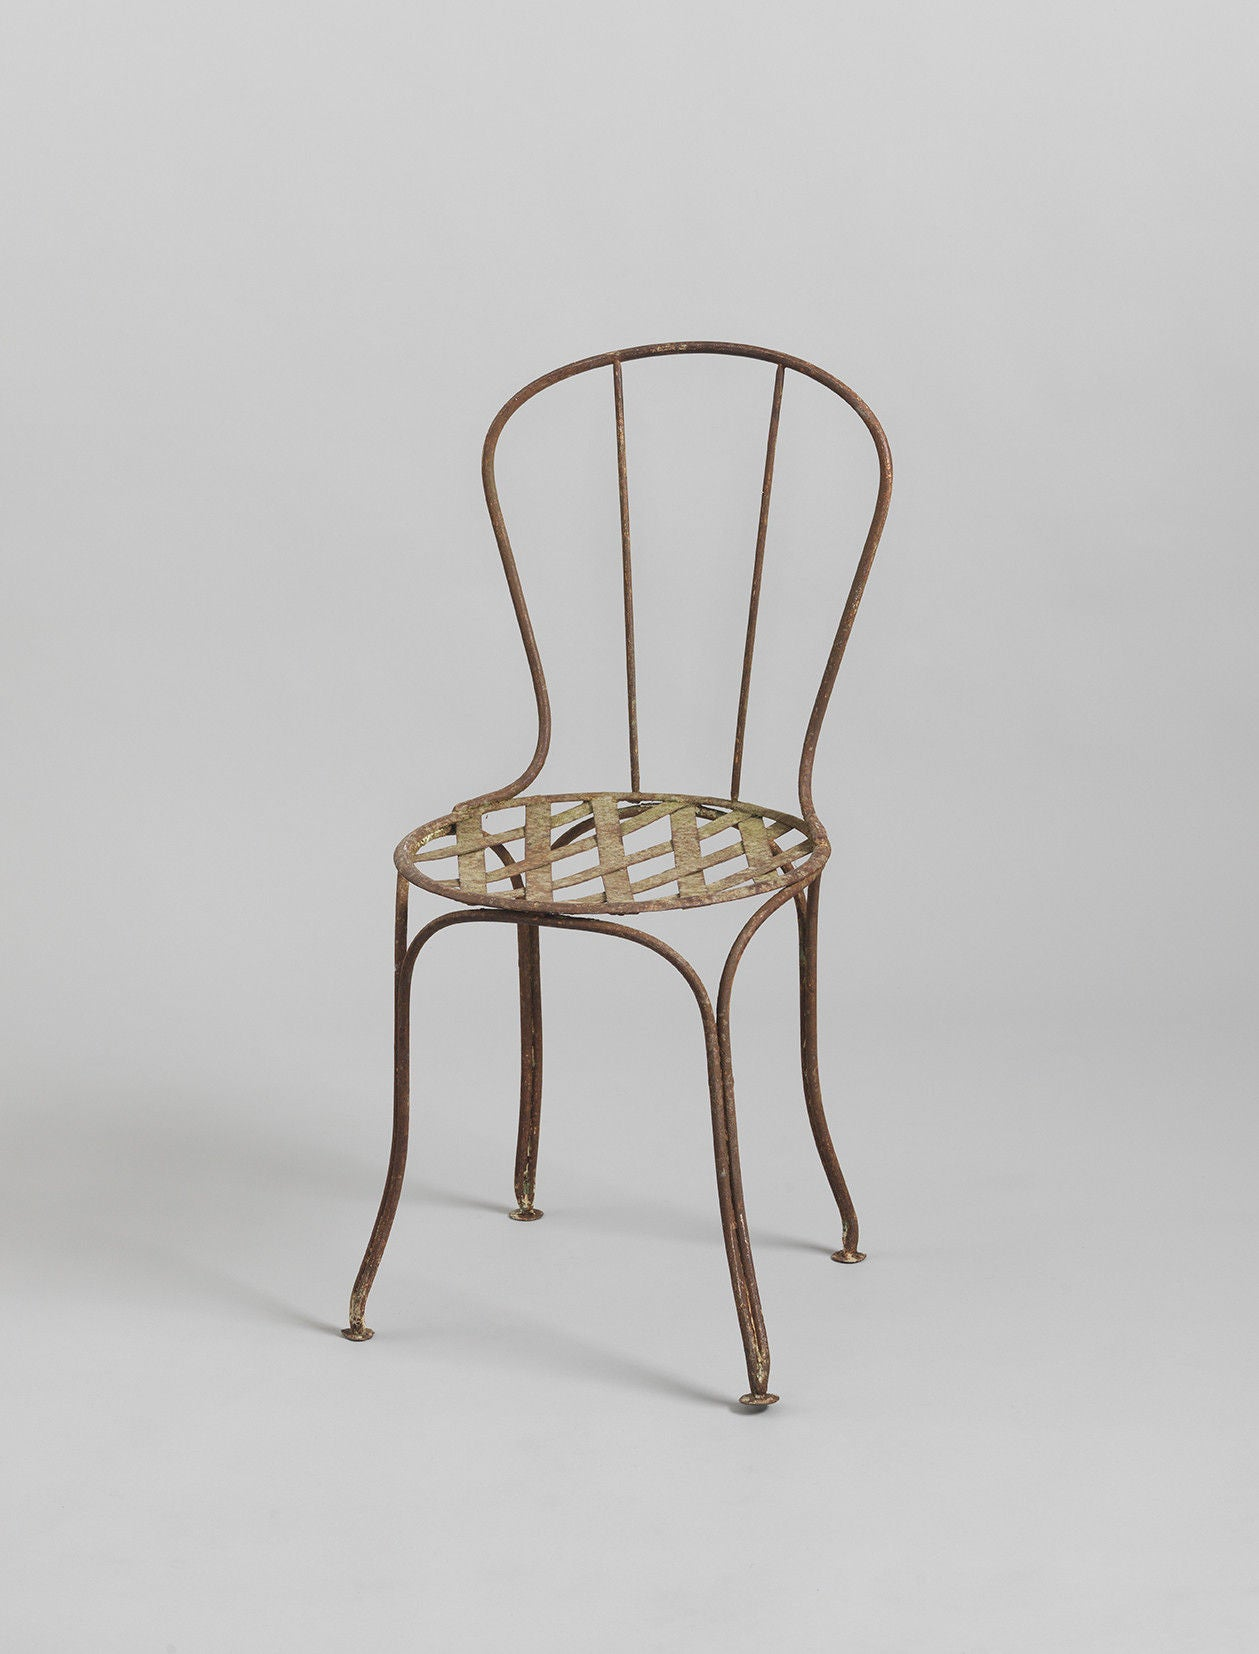 Minimal Early Metal Chair